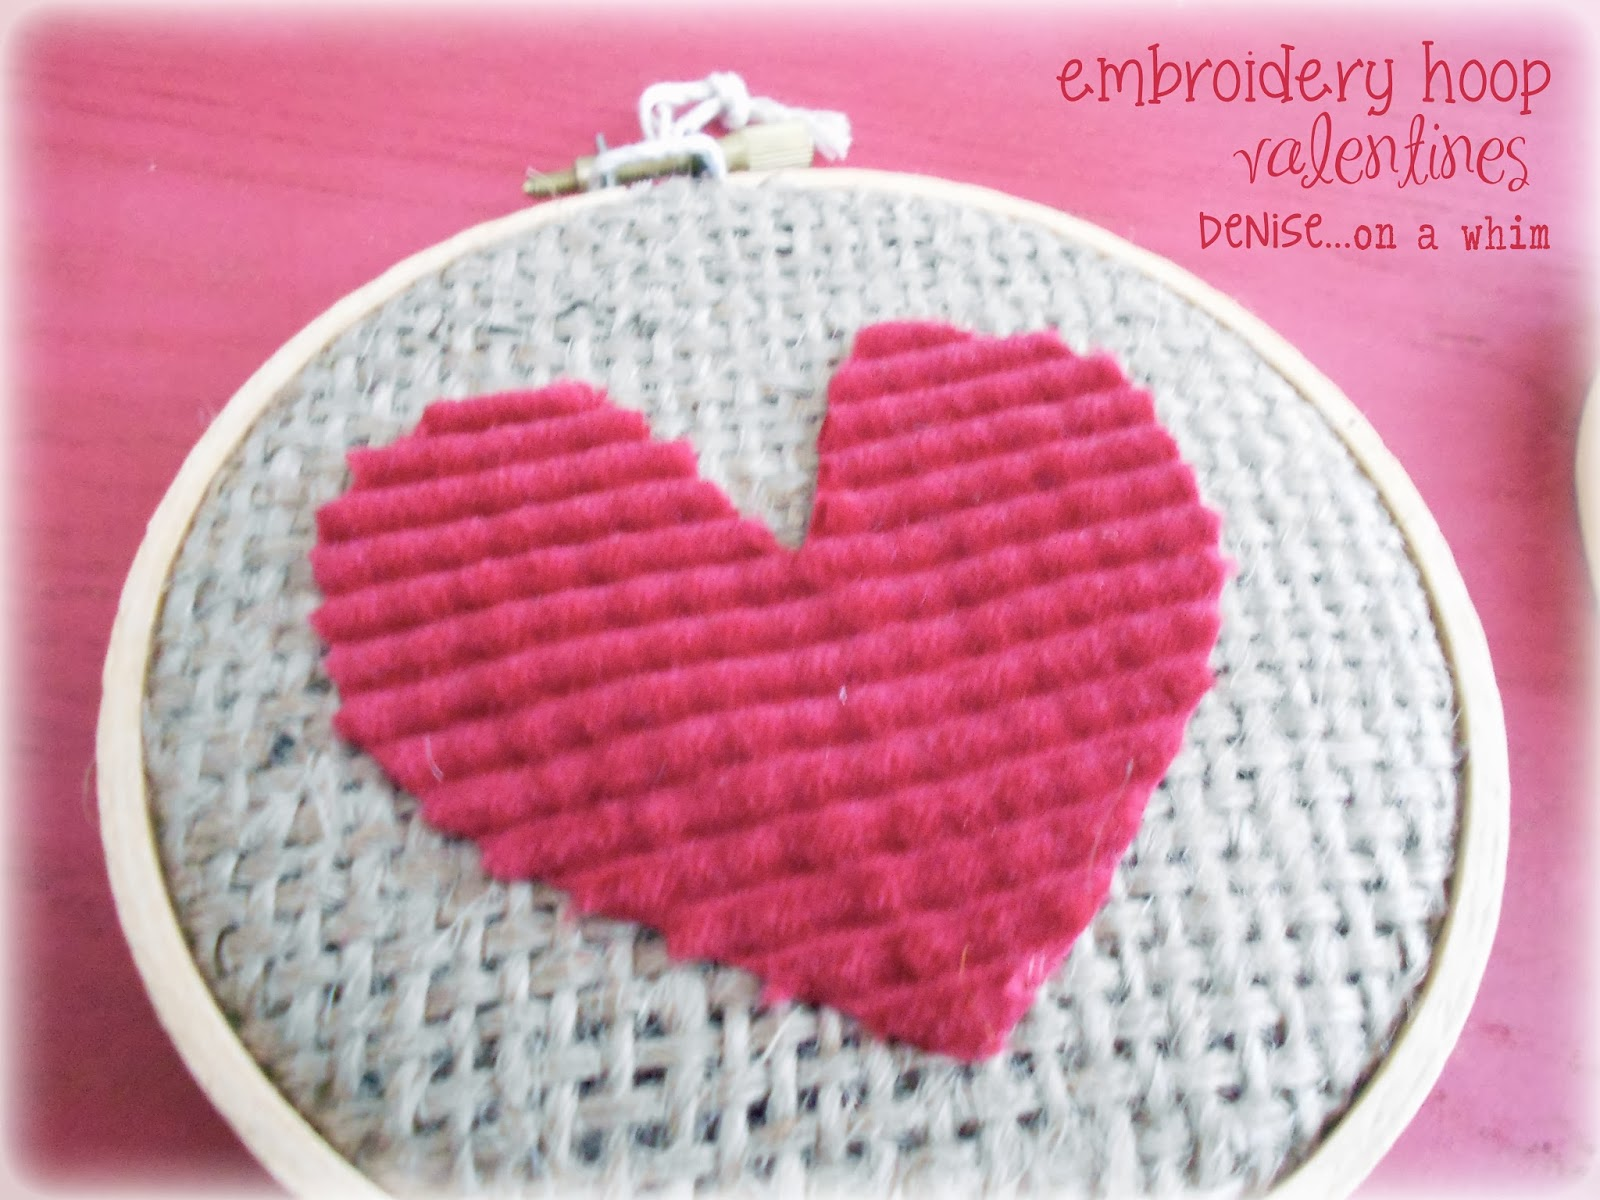 Corduroy Scrap Heart in an Embroidery Hoop via http://deniseonawhim.blogspot.com